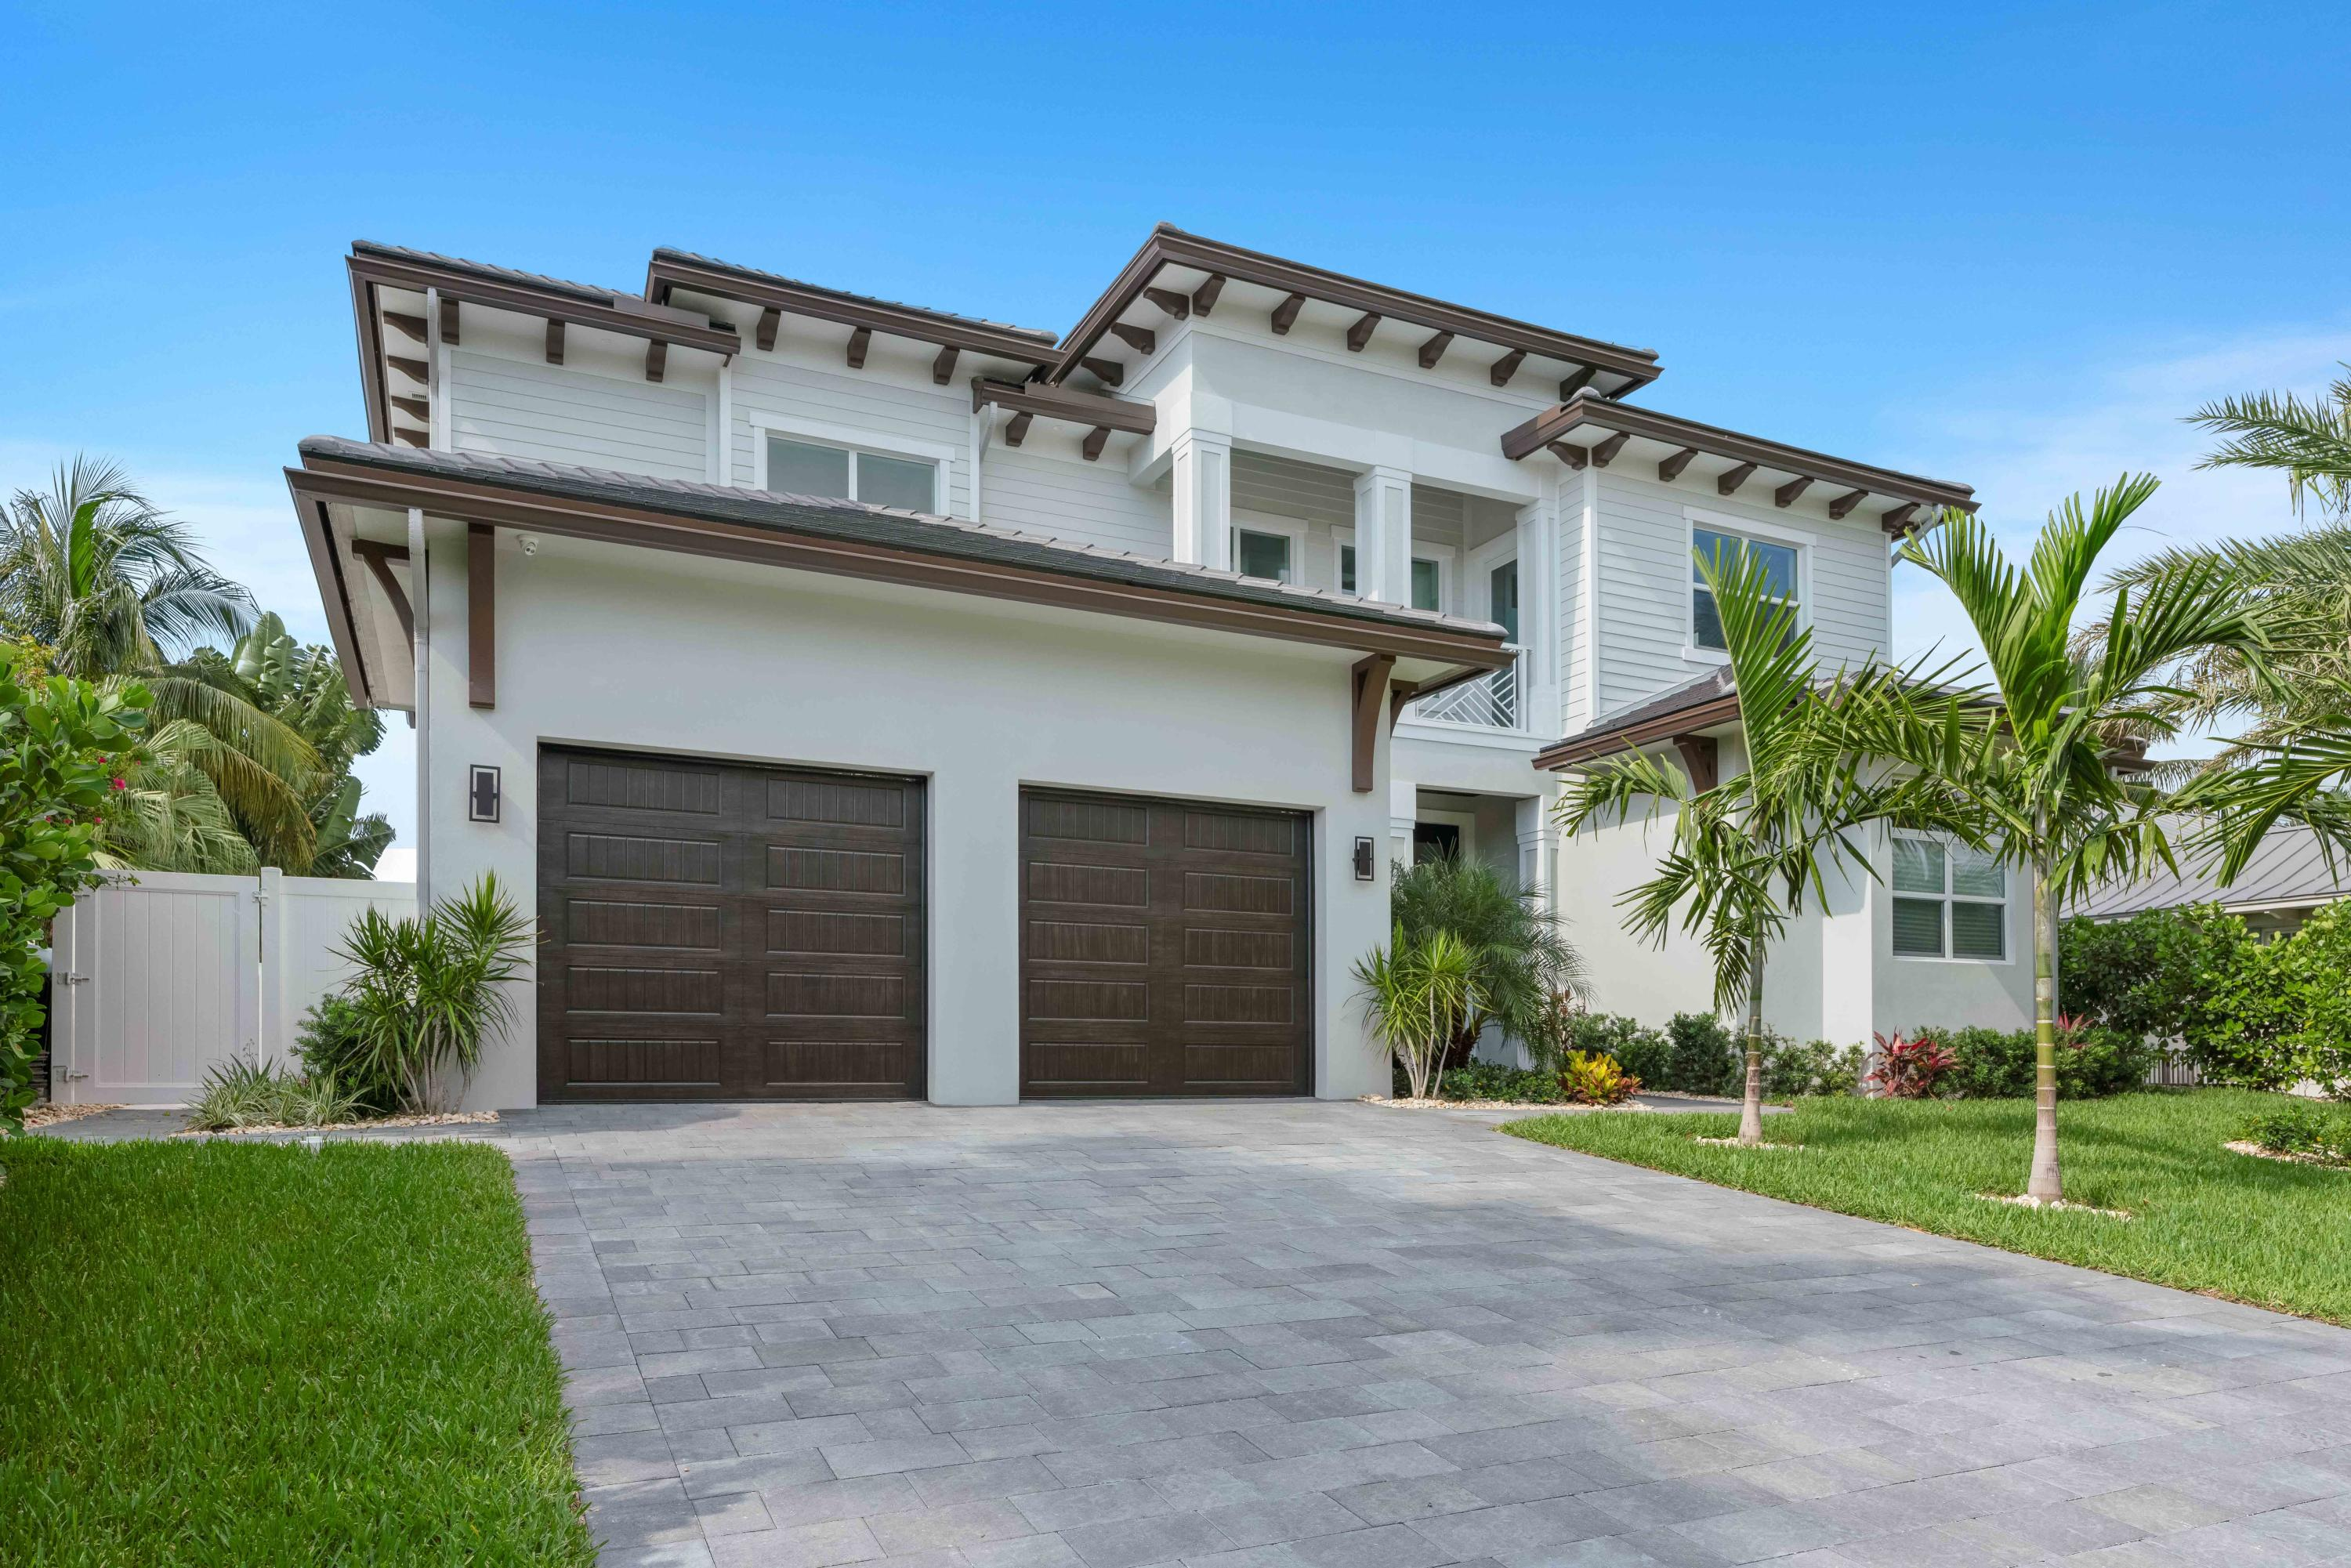 DELRAY BCH SHORES DELRAY BEACH REAL ESTATE